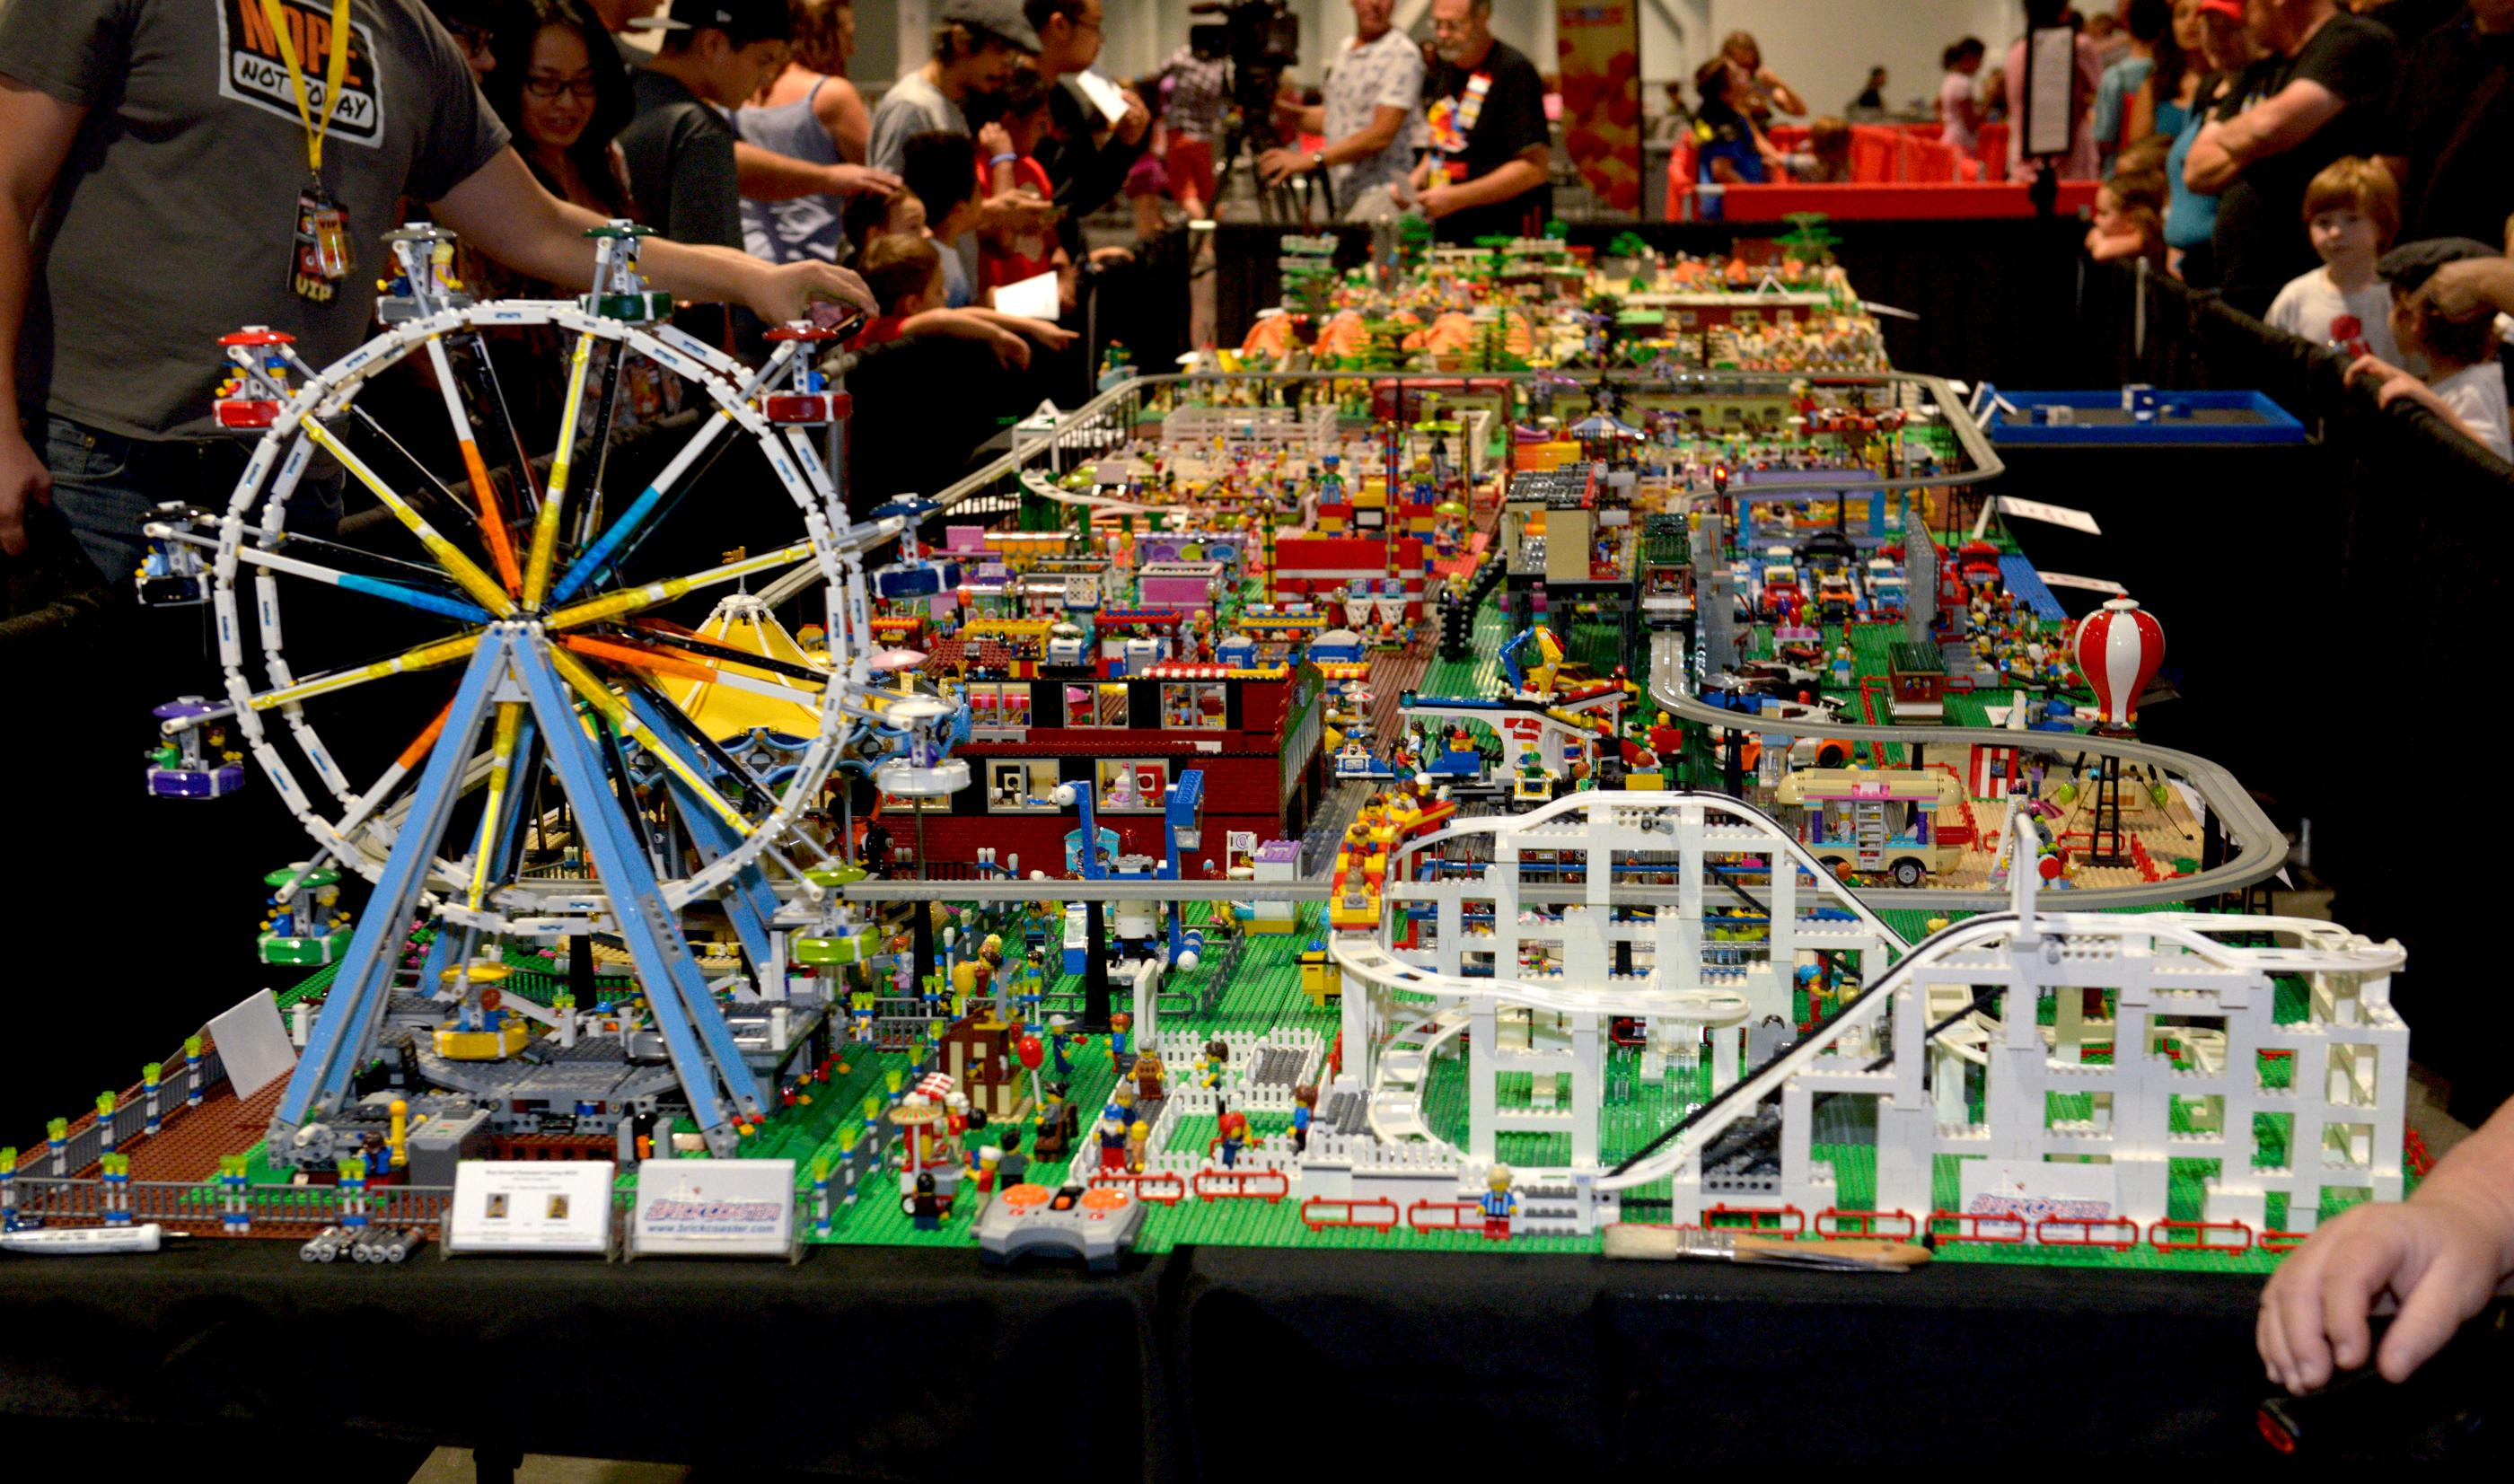 Light-up, moving ferris wheels, roller coasters and street cars are only part of the Lego attractions at the Brick Fest Live Lego Fan Experience at the Las Vegas Convention Center, September 9, 2017. [Glenn Pinkerton/Las Vegas News Bureau]